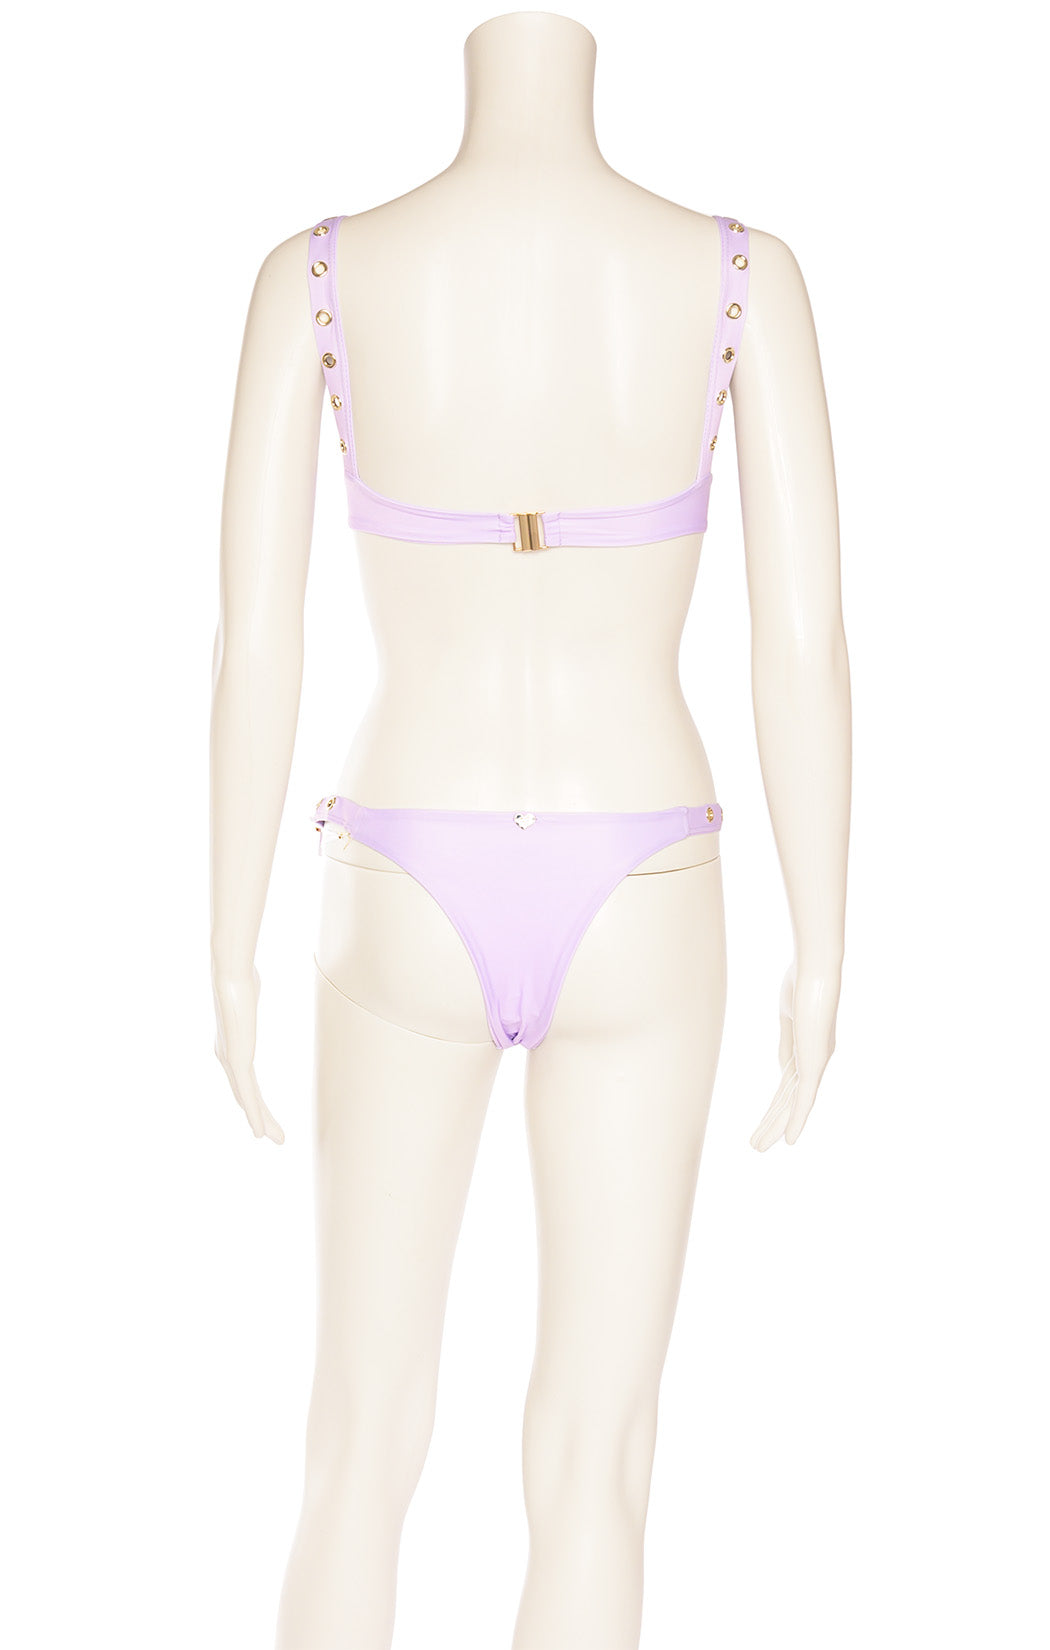 Lavender underwire bra and matching bottoms with silver and plastic  decoration